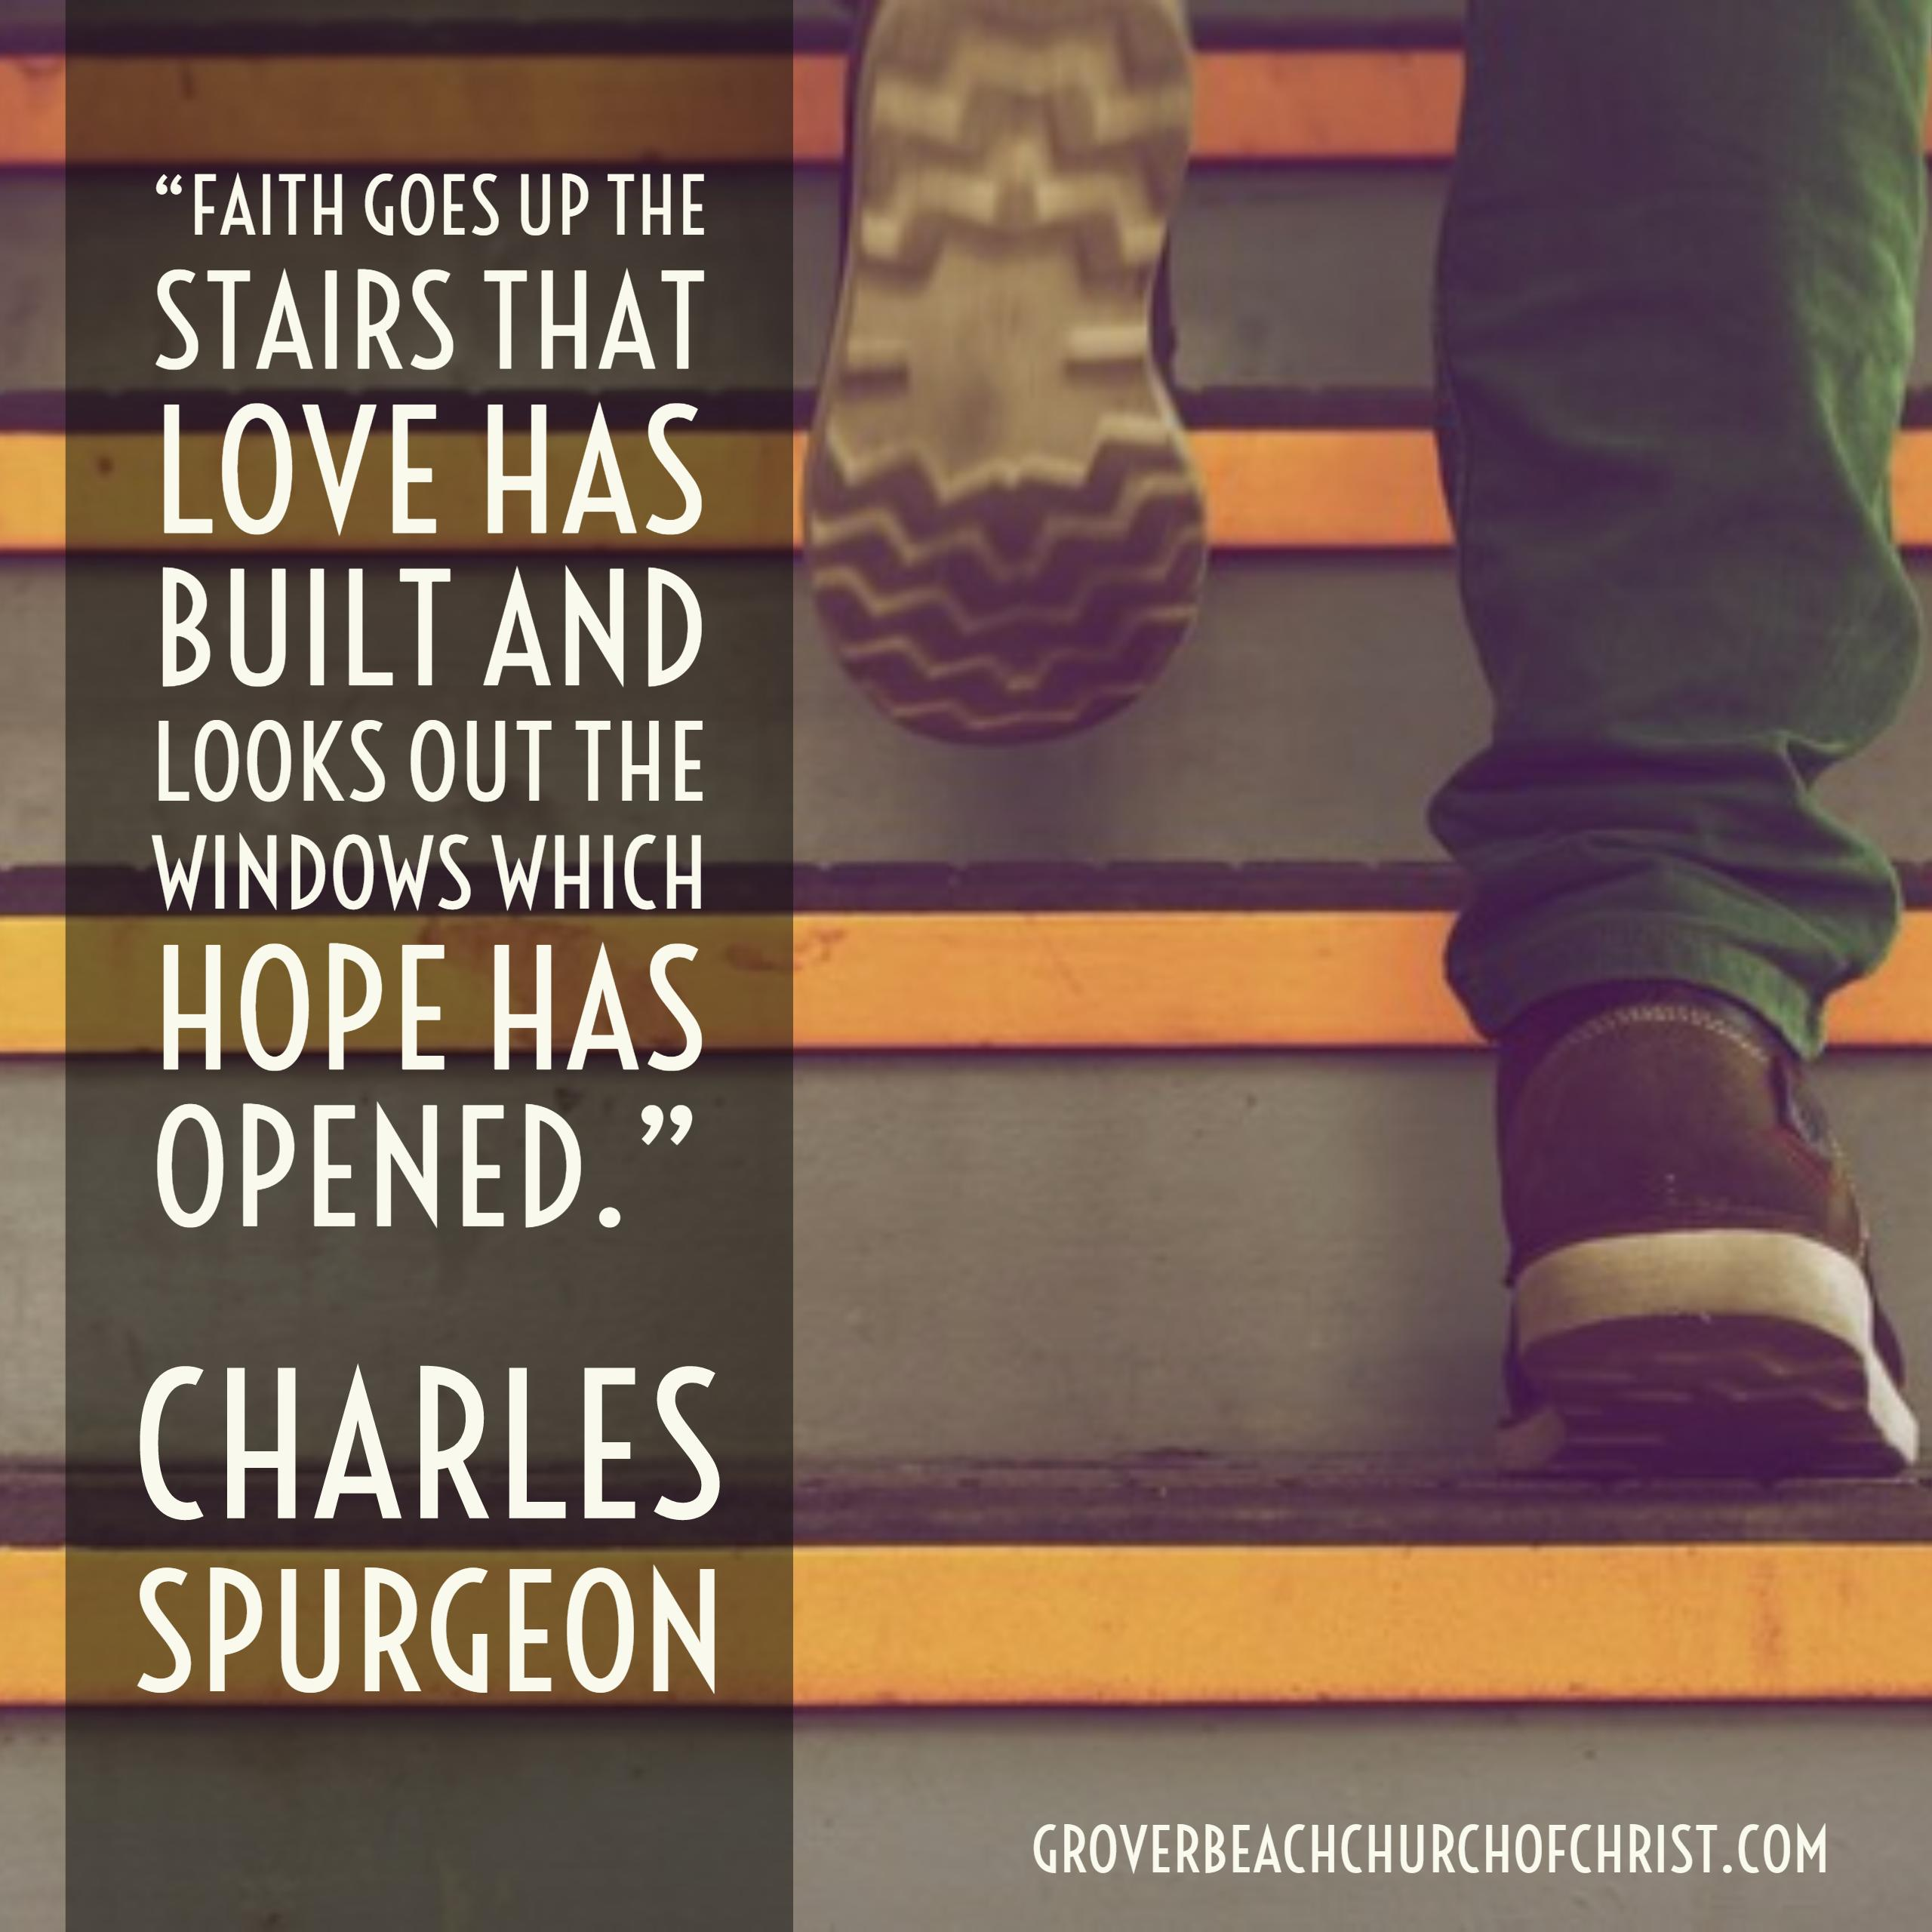 Spurgeon Faith goes up the stairs